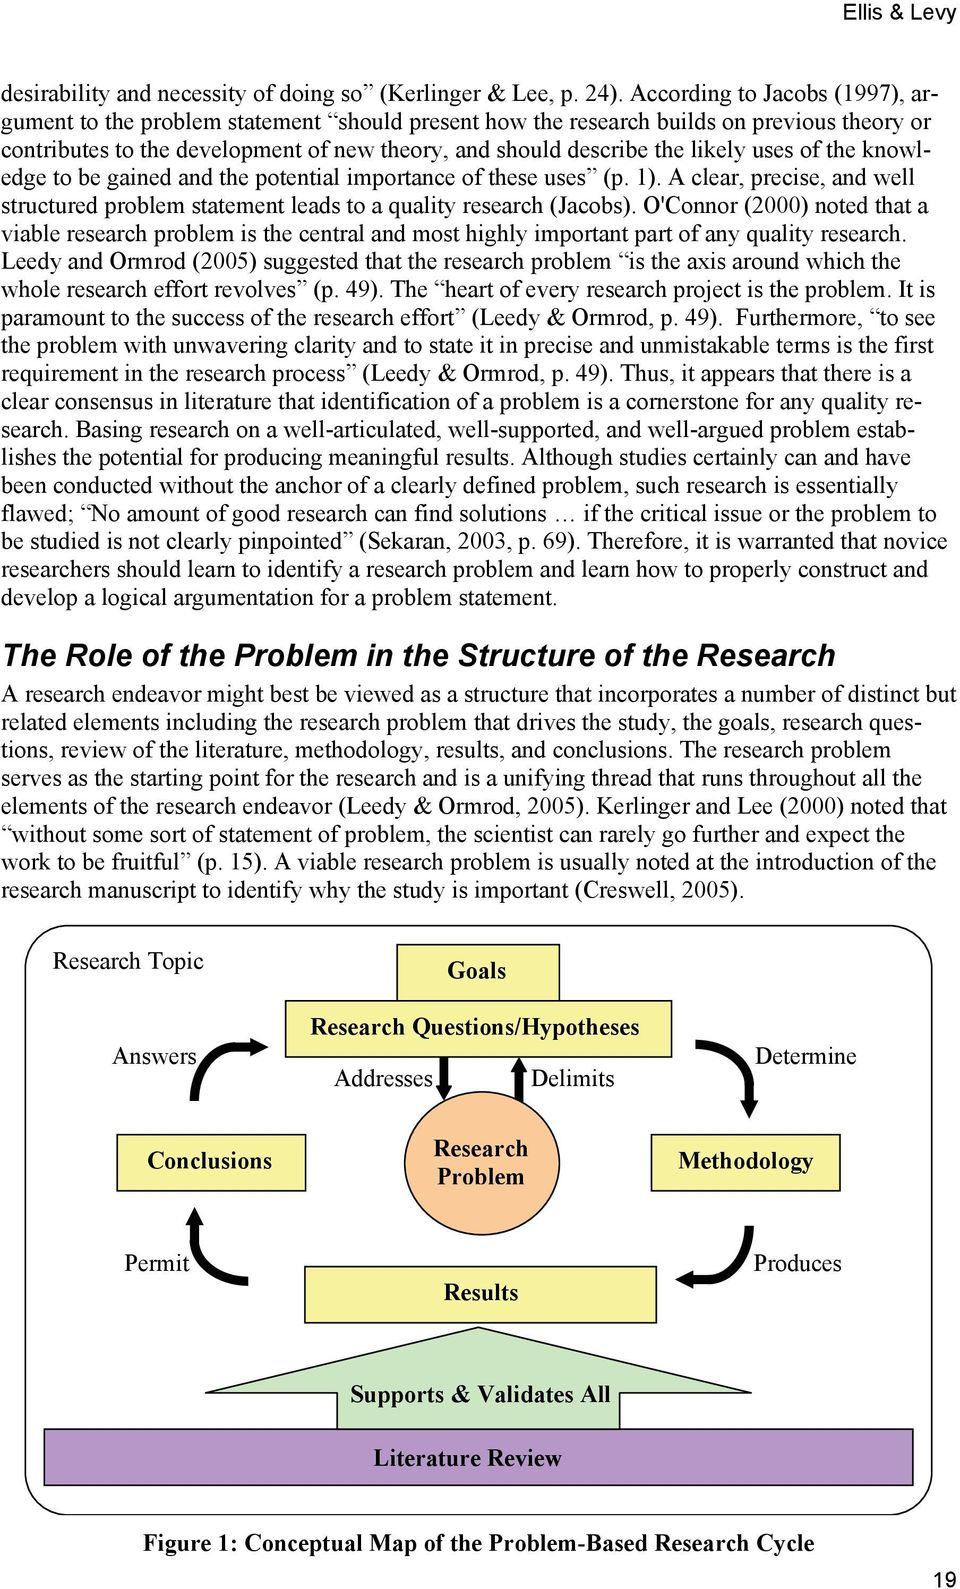 uses of the knowledge to be gained and the potential importance of these uses (p. 1). A clear, precise, and well structured problem statement leads to a quality research (Jacobs).